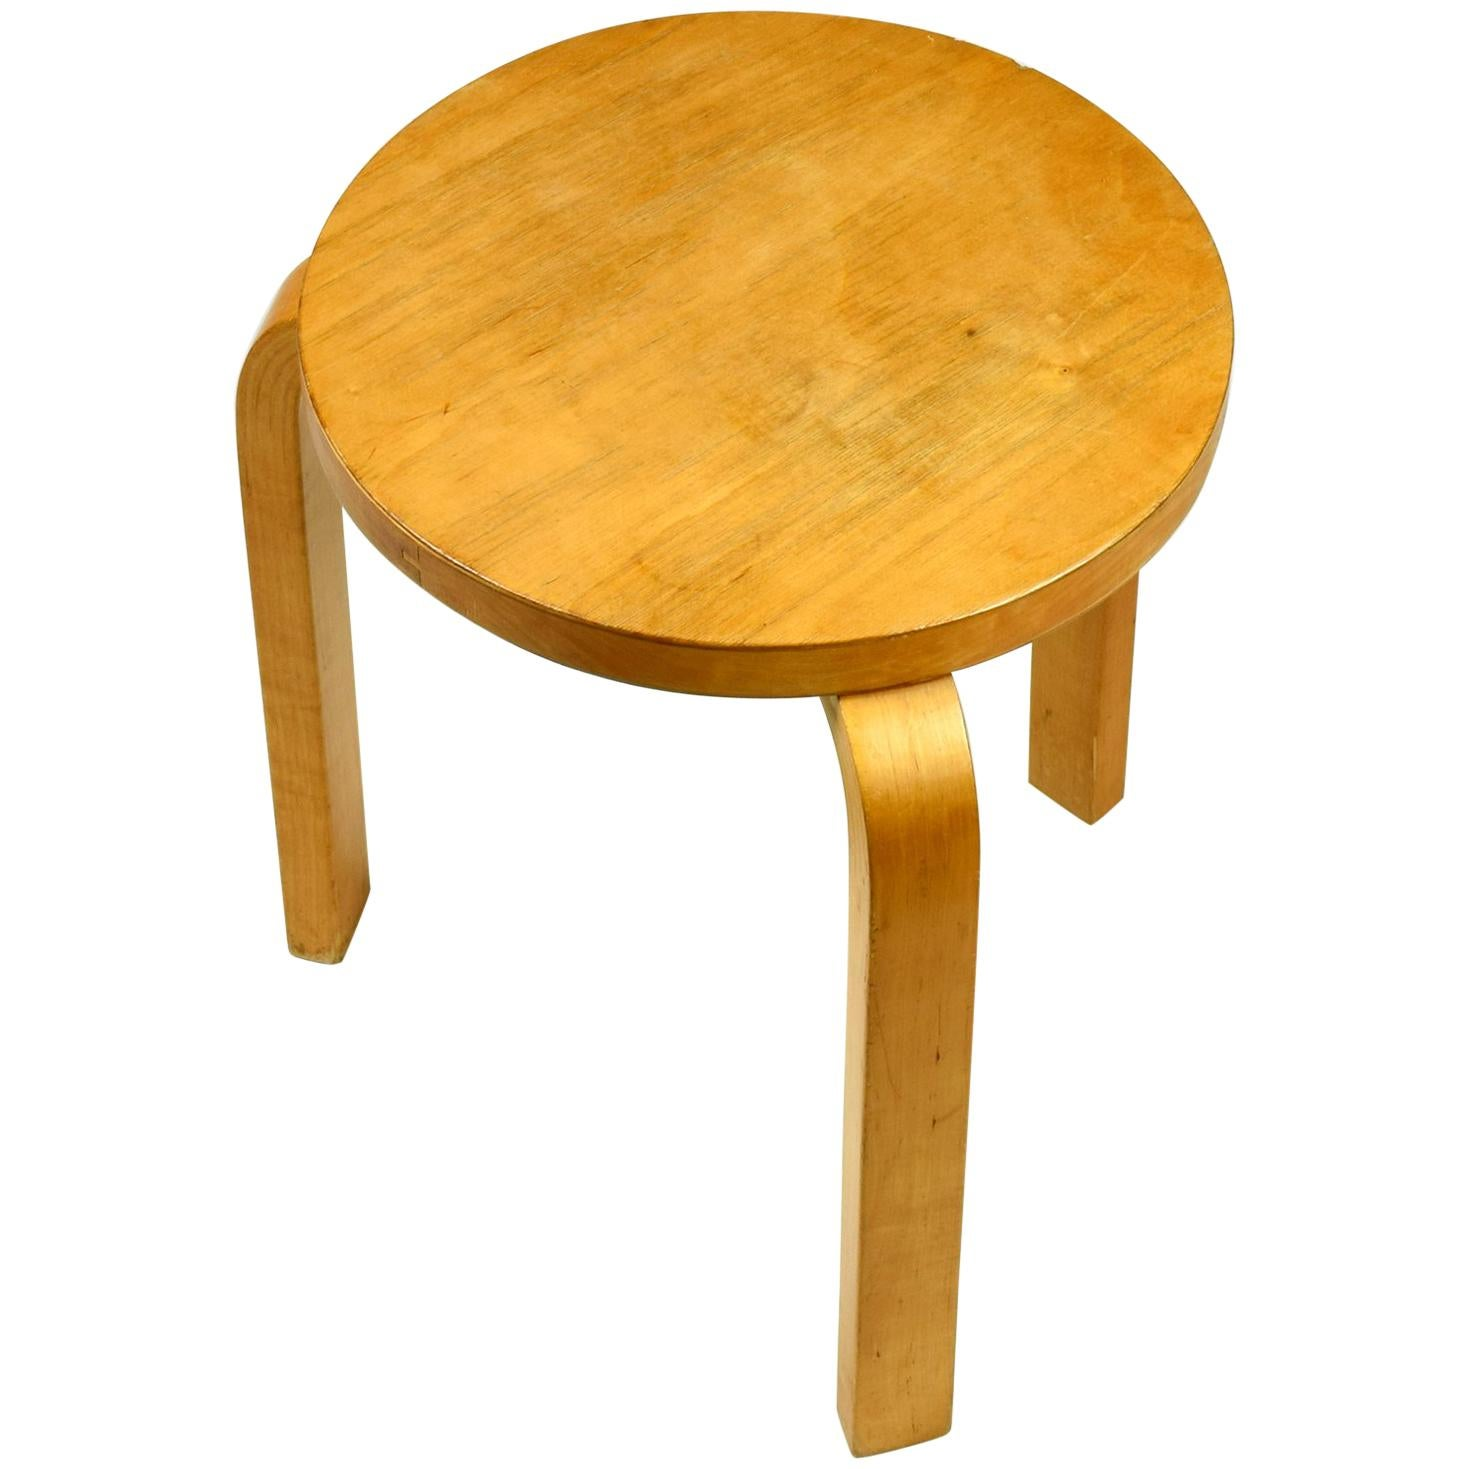 Alvar Aalto, Stacking Stool, Designed 1933, Beautiful Early Example